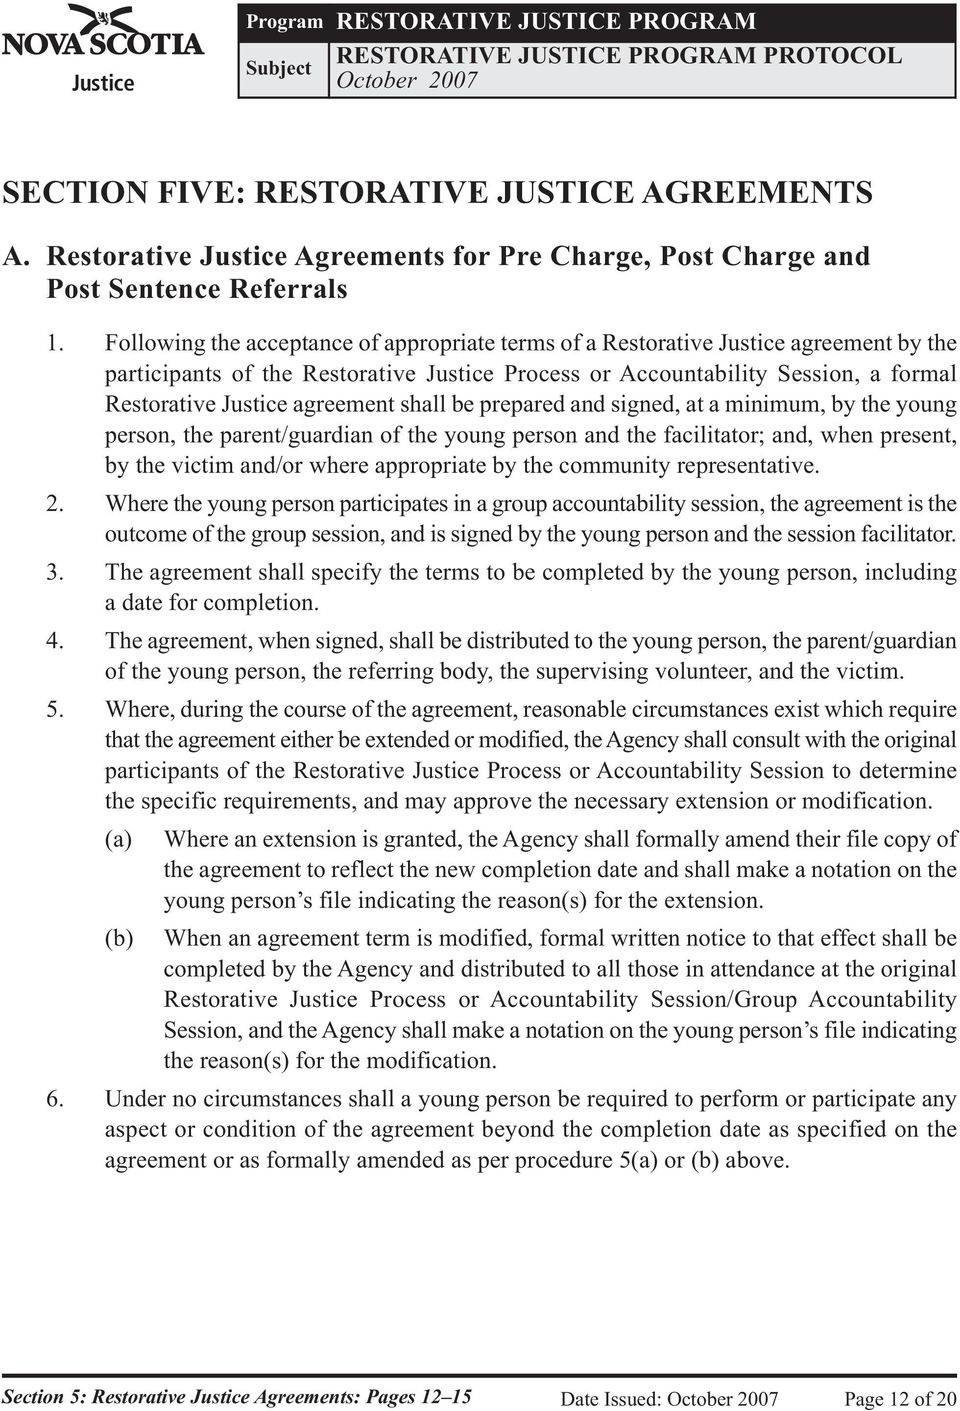 agreement shall be prepared and signed, at a minimum, by the young person, the parent/guardian of the young person and the facilitator; and, when present, by the victim and/or where appropriate by